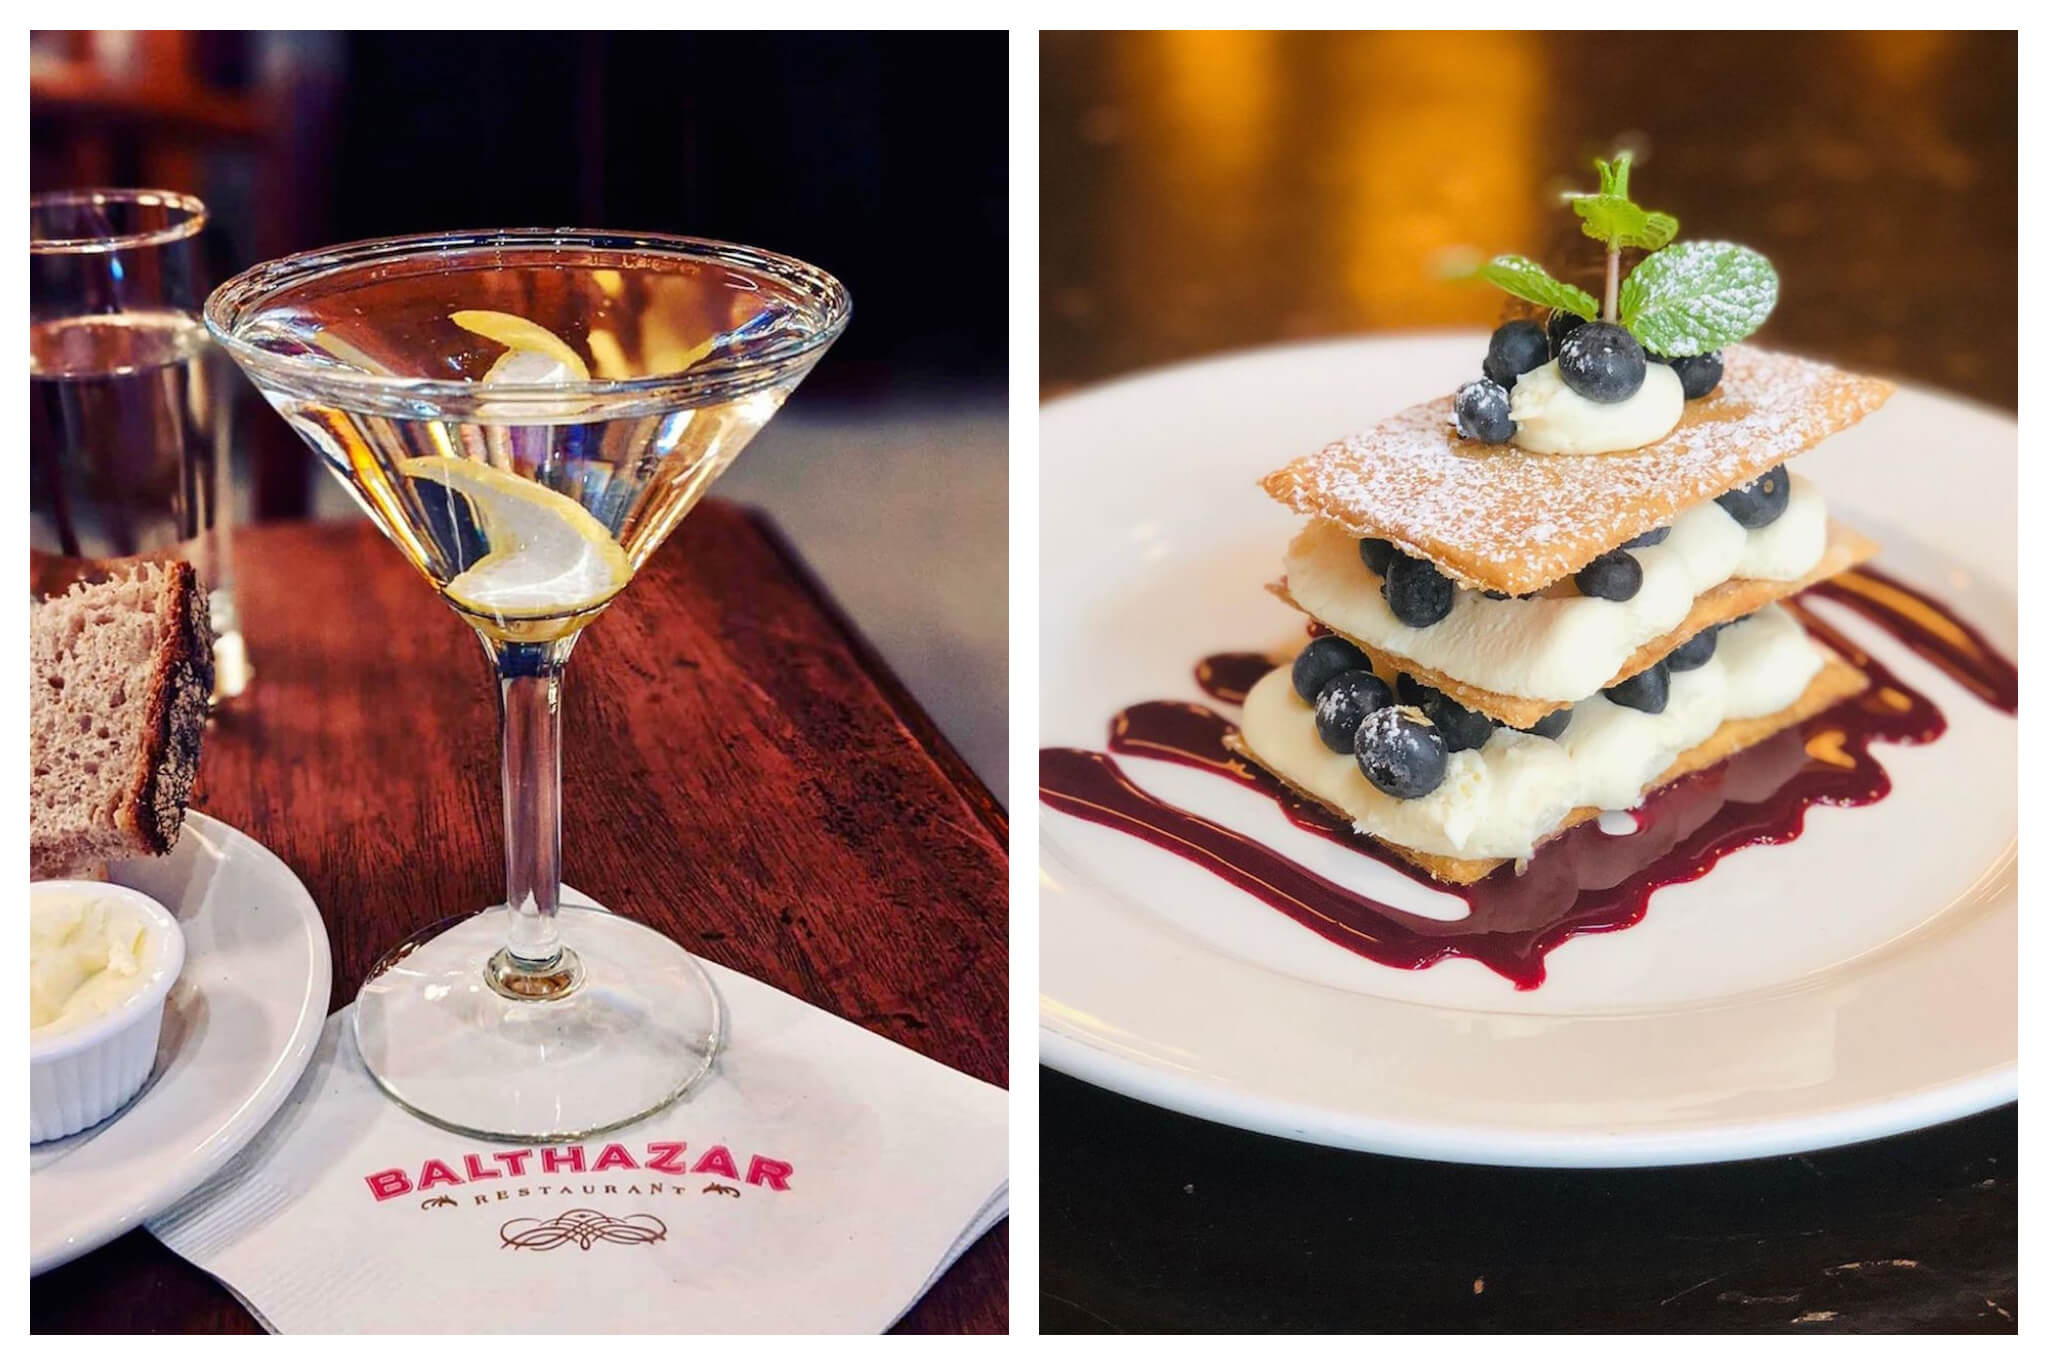 Left: A freshly made martini with a lemon slice sits atop a napkin, printed with the name of the restaurant, Balthazar, on it, Right: A delicious plate of dessert at Balthazar restaurant in NYC. topped with powdered sugar, blueberries and a sprig of mint